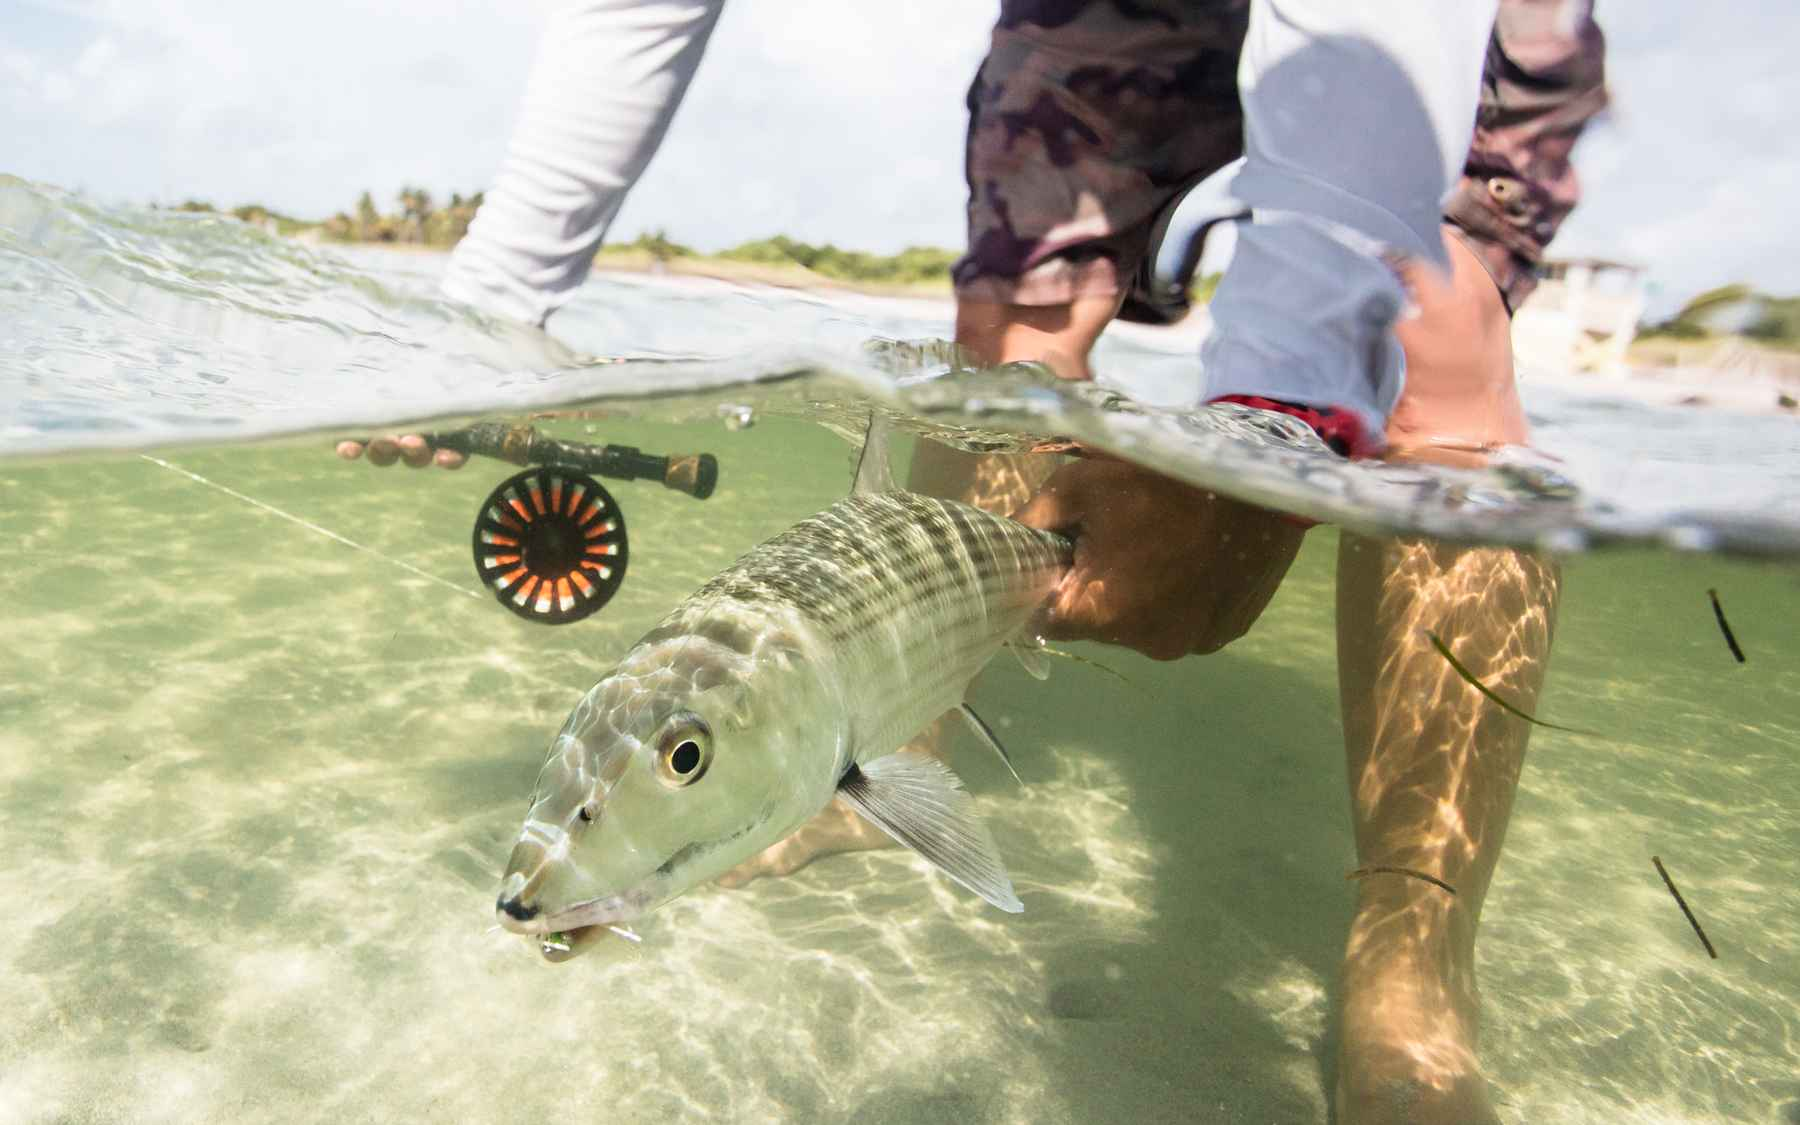 Review: Redington BEHEMOTH fly reel | Hatch Magazine - Fly Fishing, etc